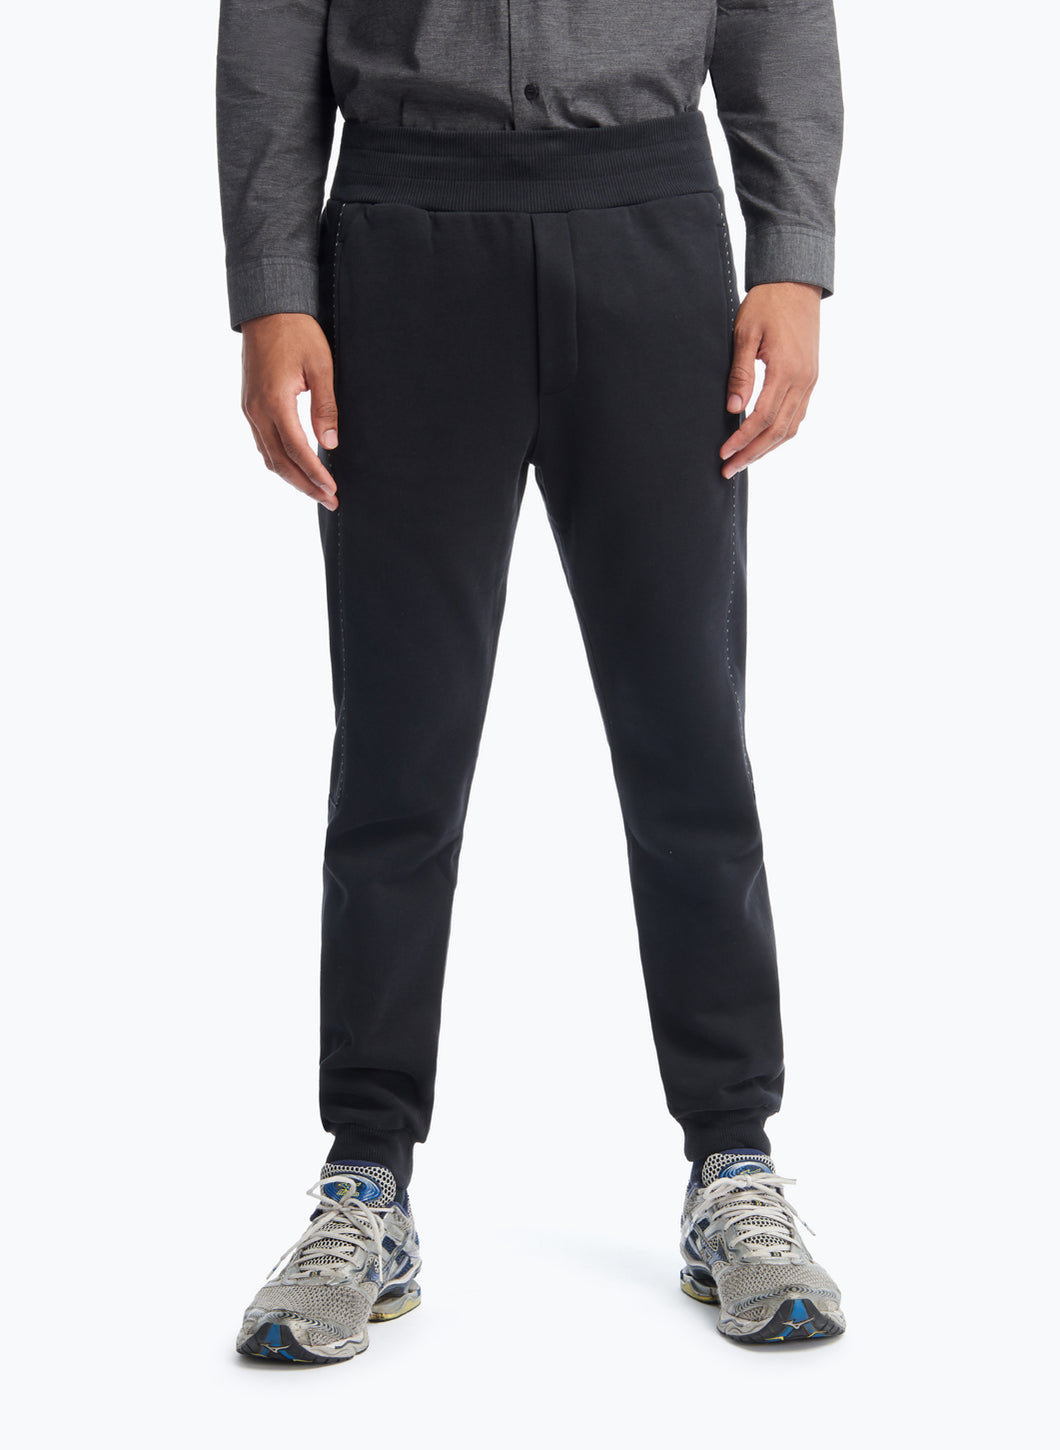 Sweat Pants with Side Cuts in Black Fleece with Black Trim